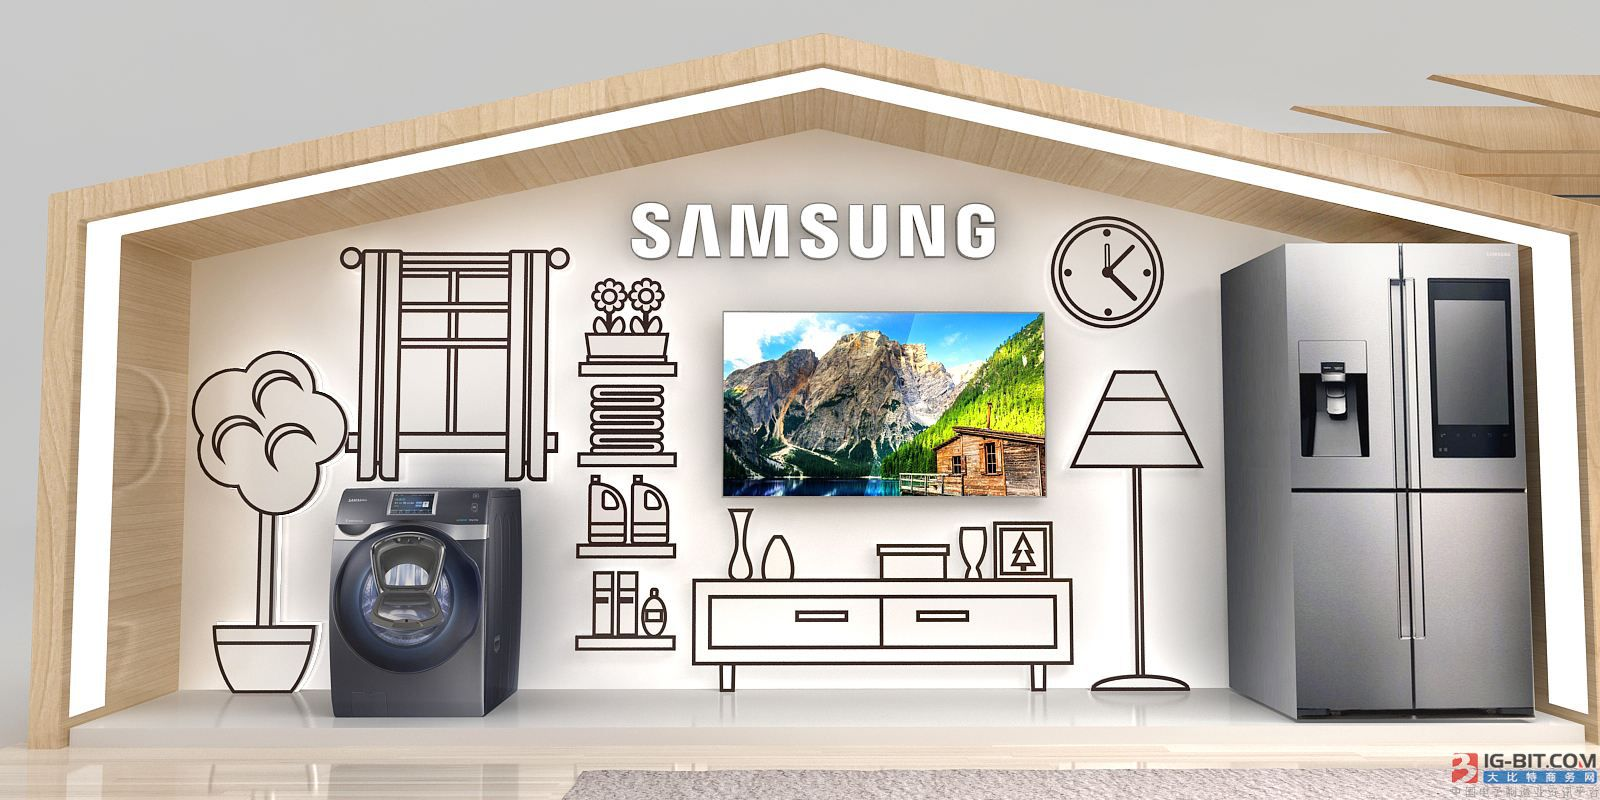 SamSung home appliance